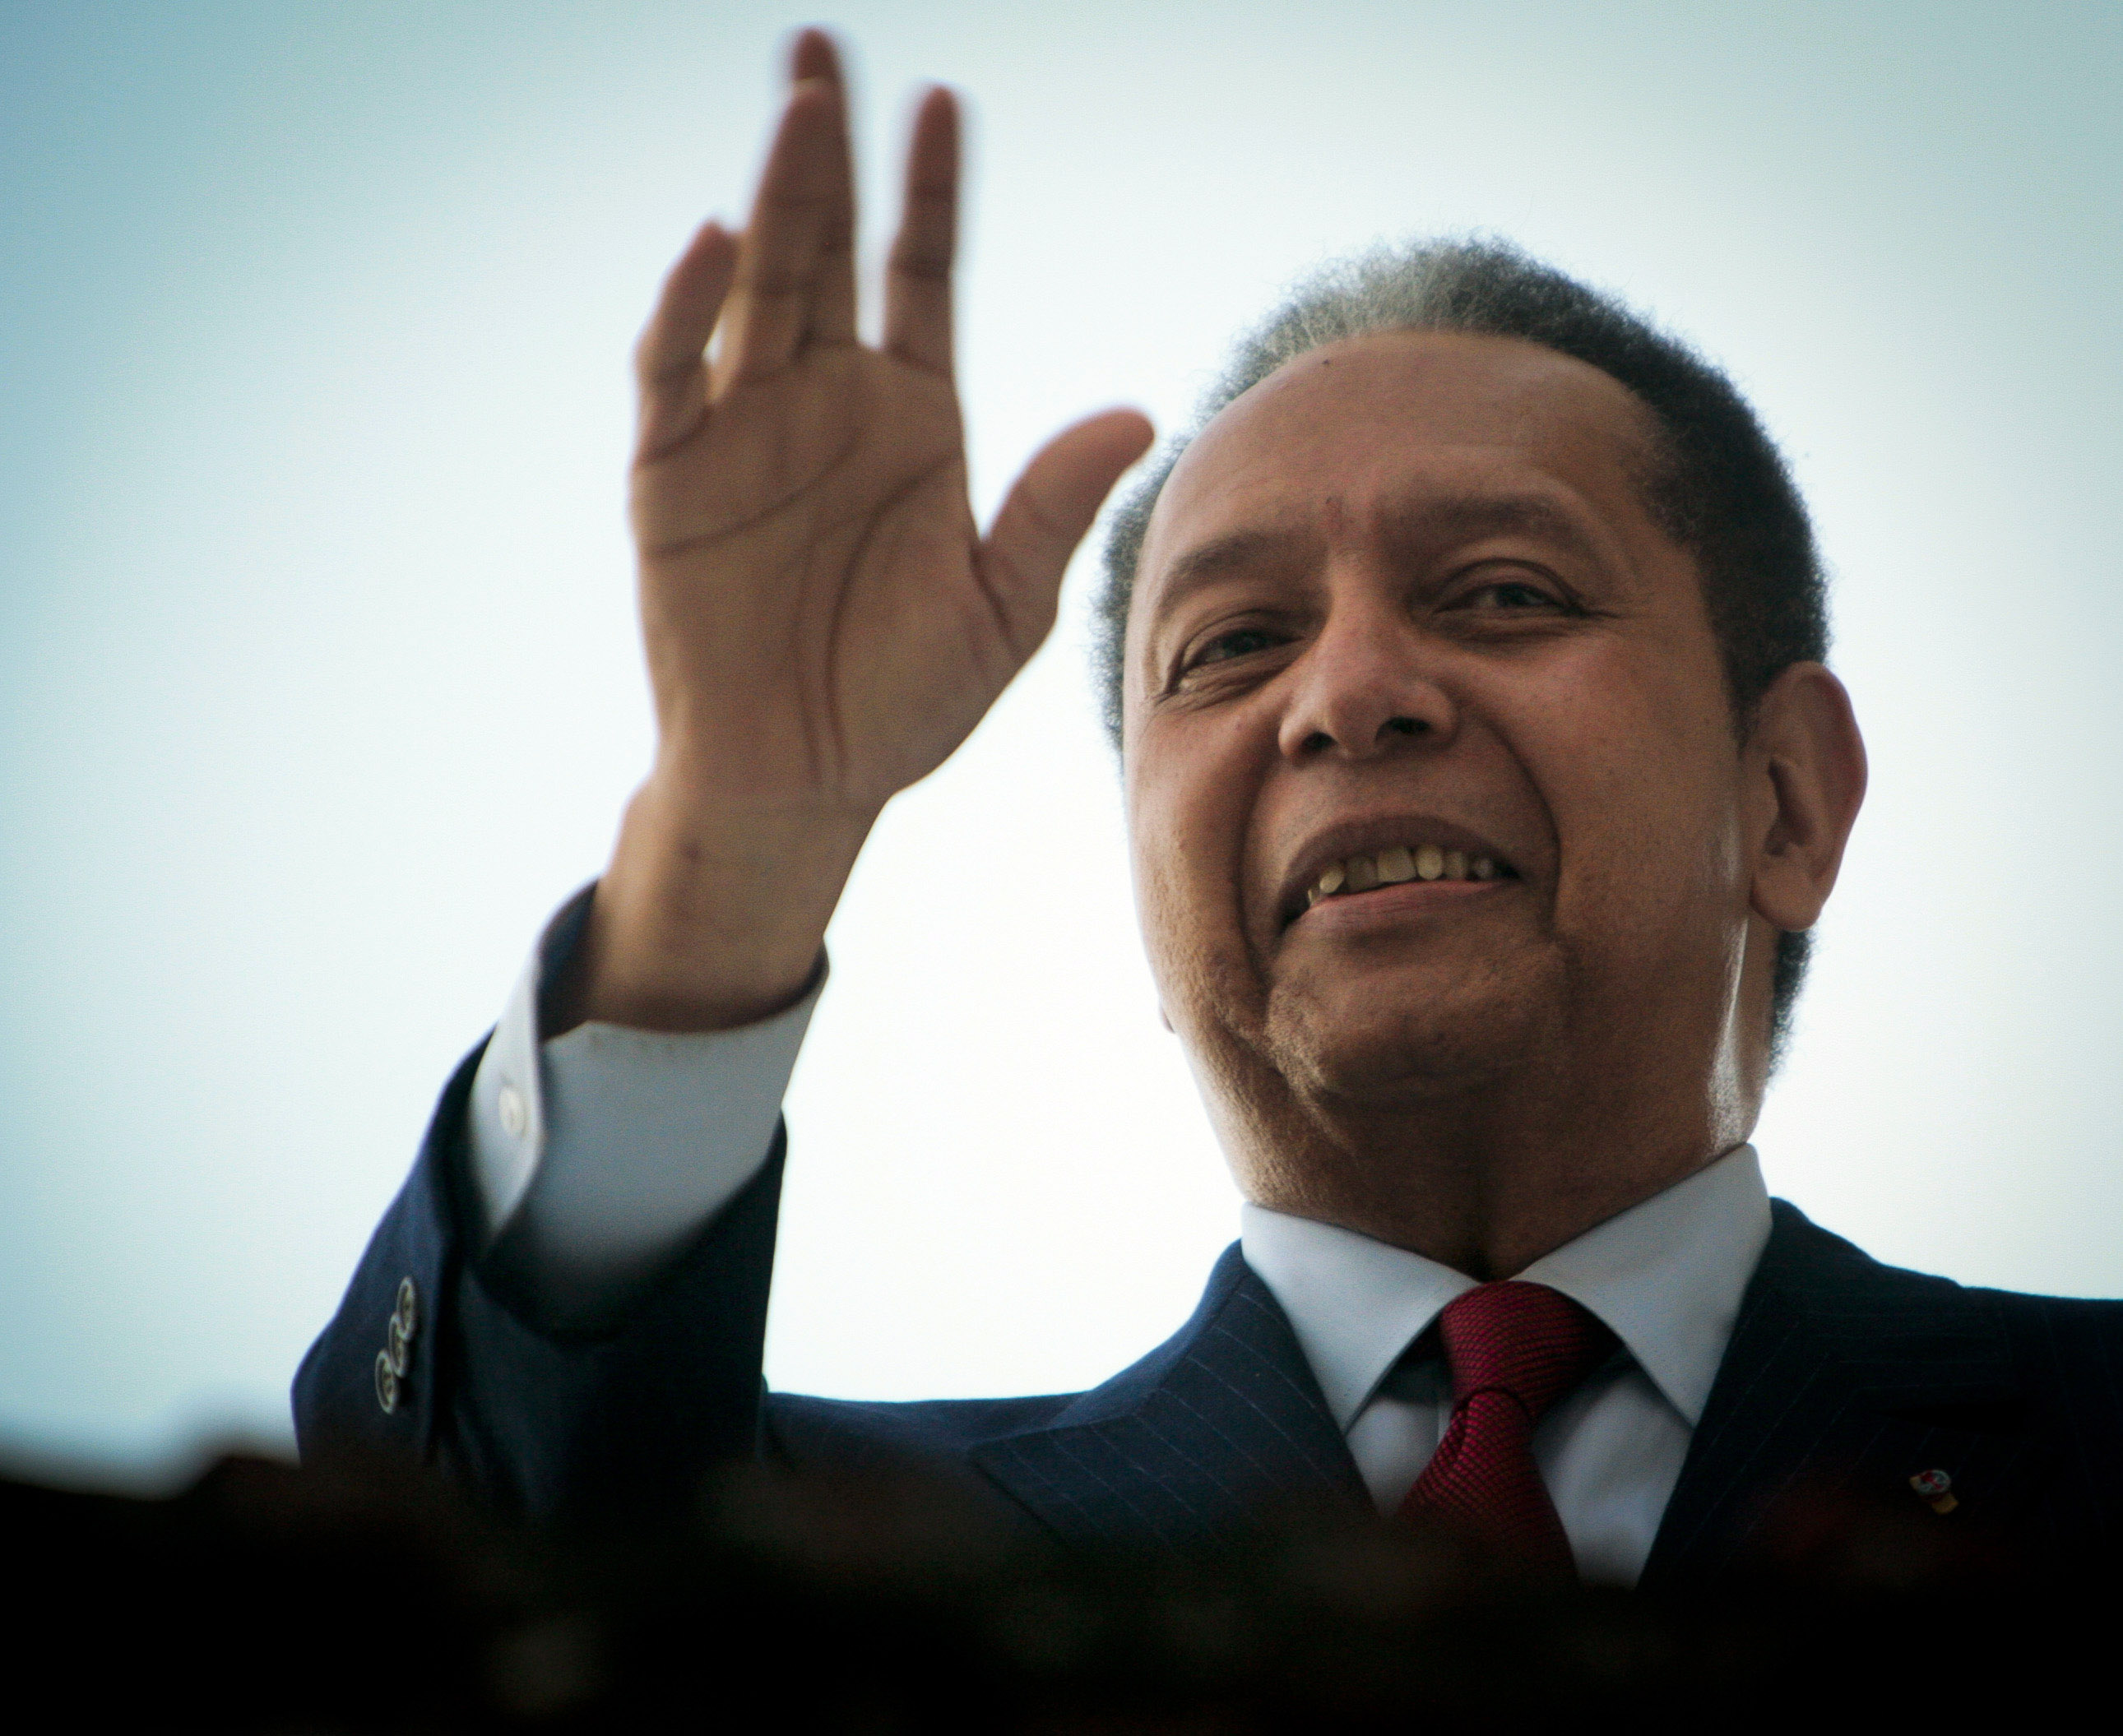 Former leader of Haiti Jean-Claude  Baby Doc  Duvalier waves from a balcony following a press conference at his house in Petionville January 21, 2011 in Port-au-Prince, Haiti.